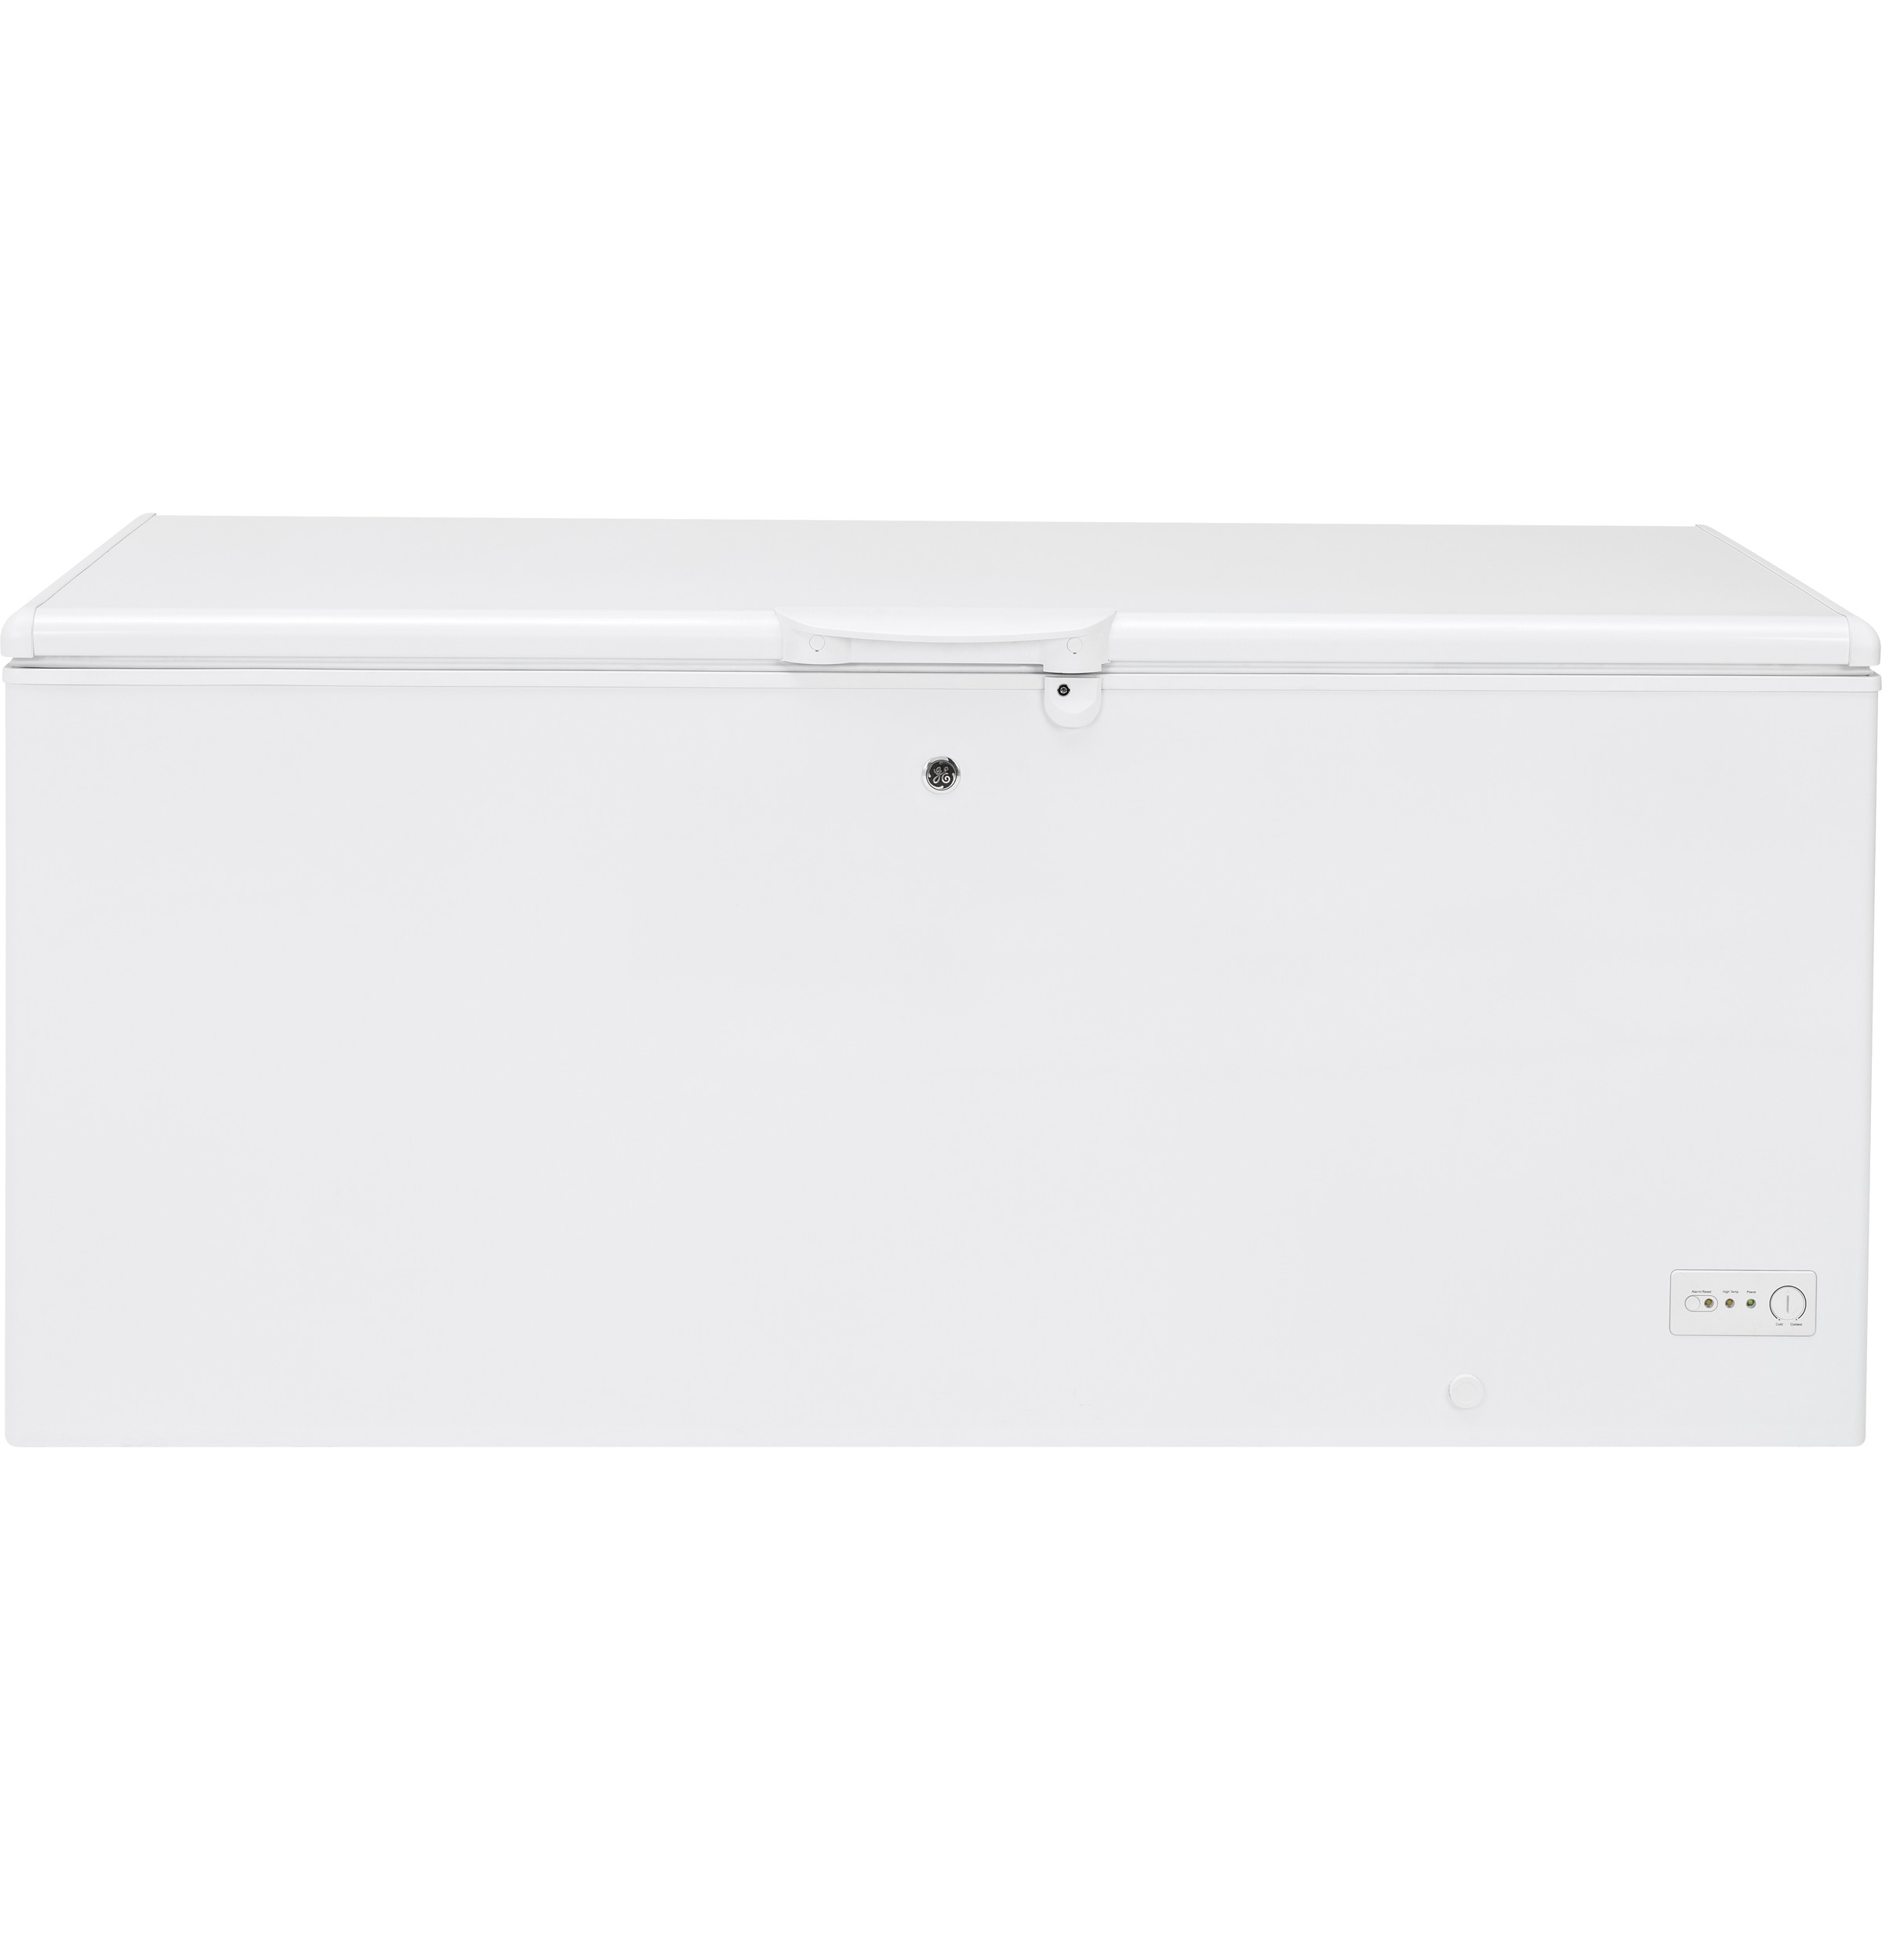 GE GE® 21.7 Cu. Ft. Manual Defrost Chest Freezer